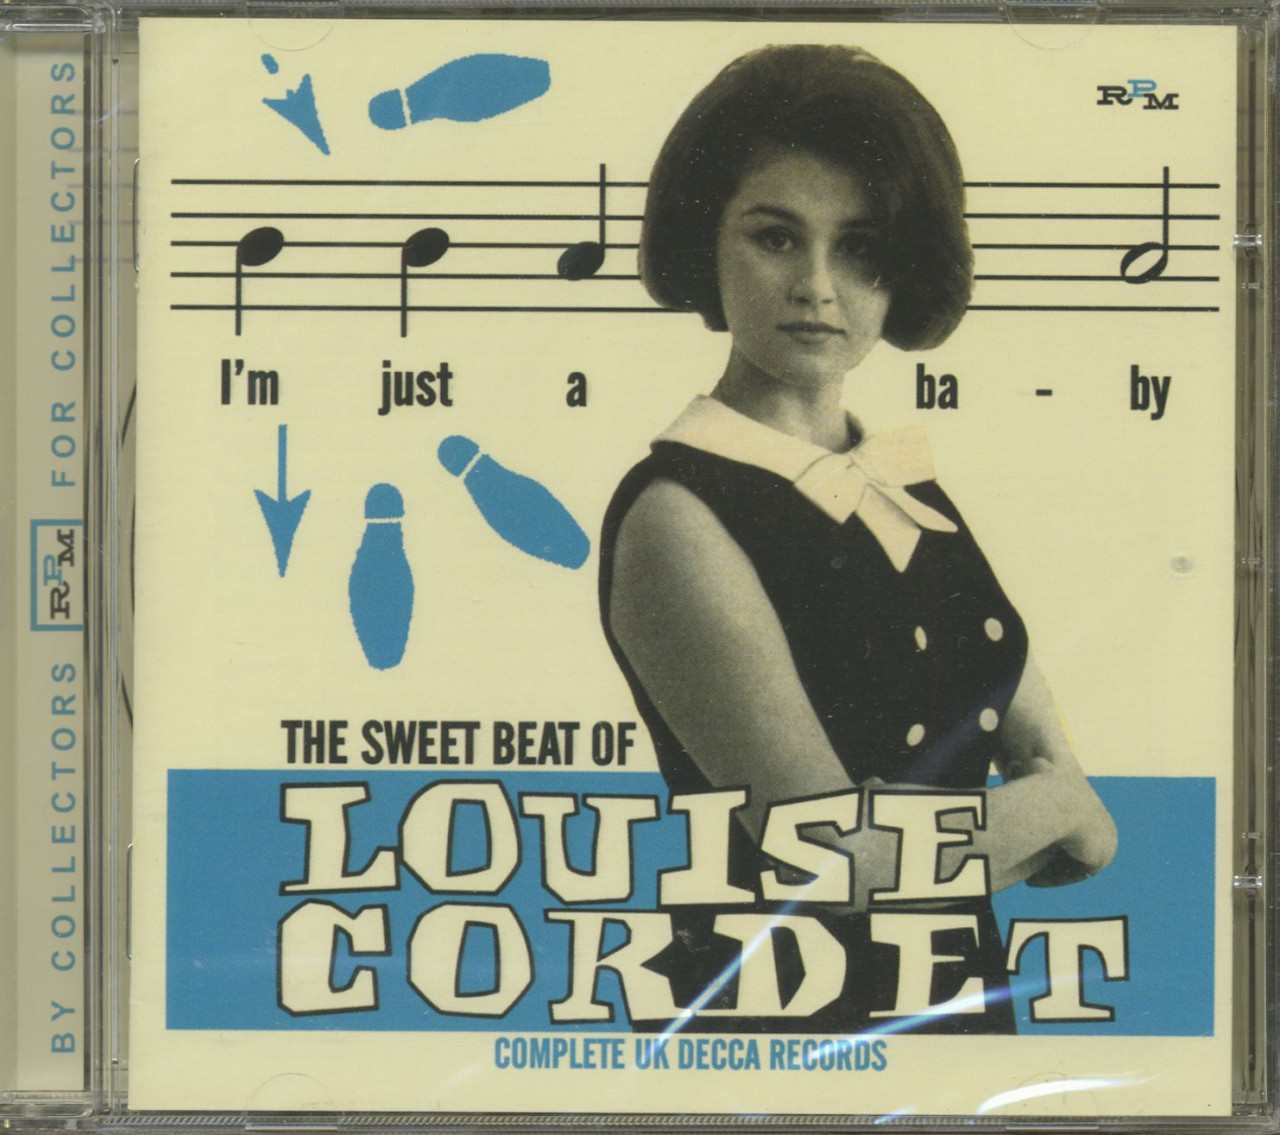 Louise Cordet - The Sweet Beat Of Complete UK Decca (CD)